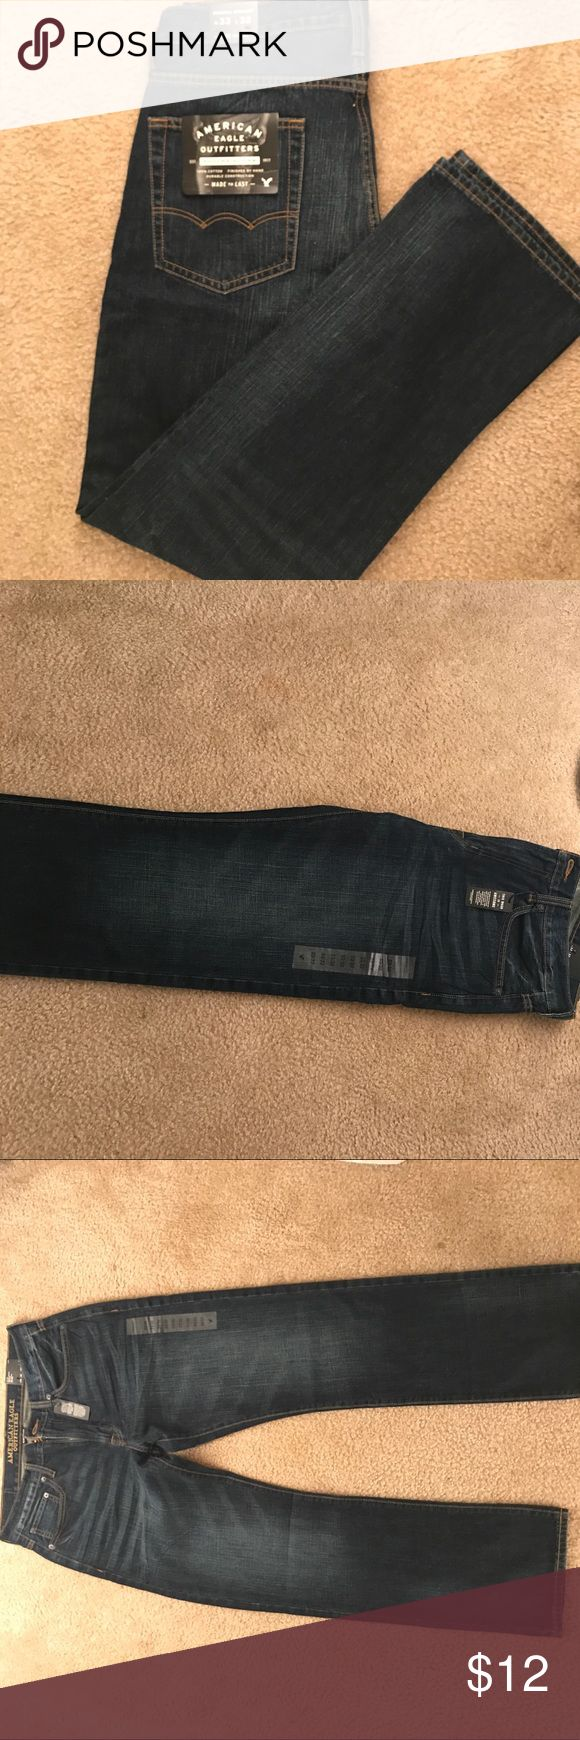 Men's American eagle jeans Brand new never worn men's American eagle original straight jeans! Still has tags and stickers! Dark colored denim with a worn washed look. American Eagle Outfitters Jeans Straight